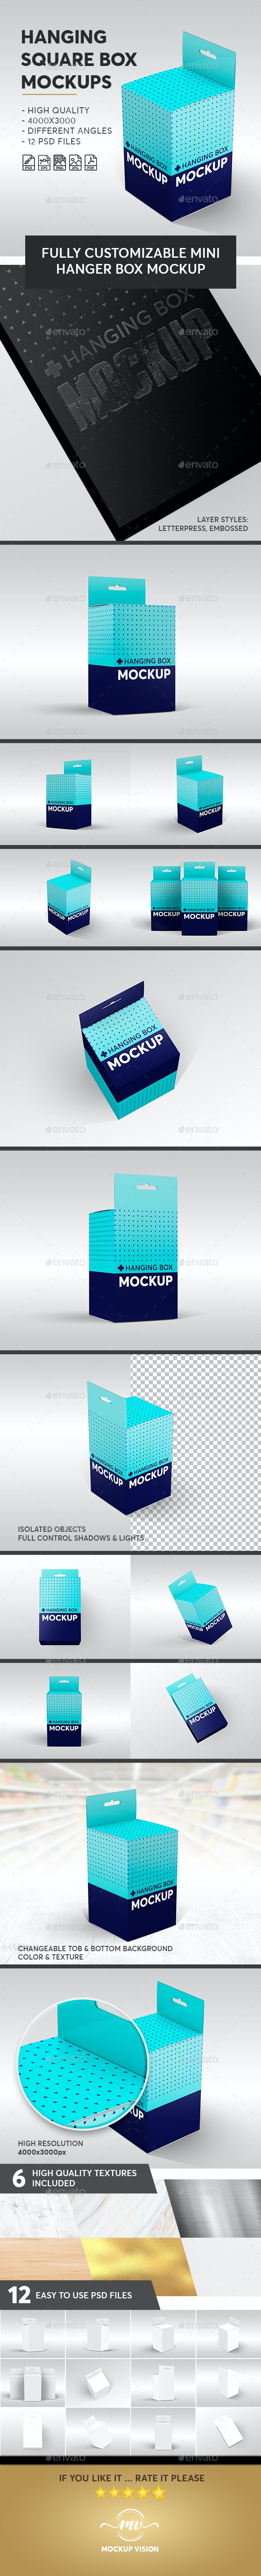 Hanging Square Box Mockups V.2 - Miscellaneous Packaging